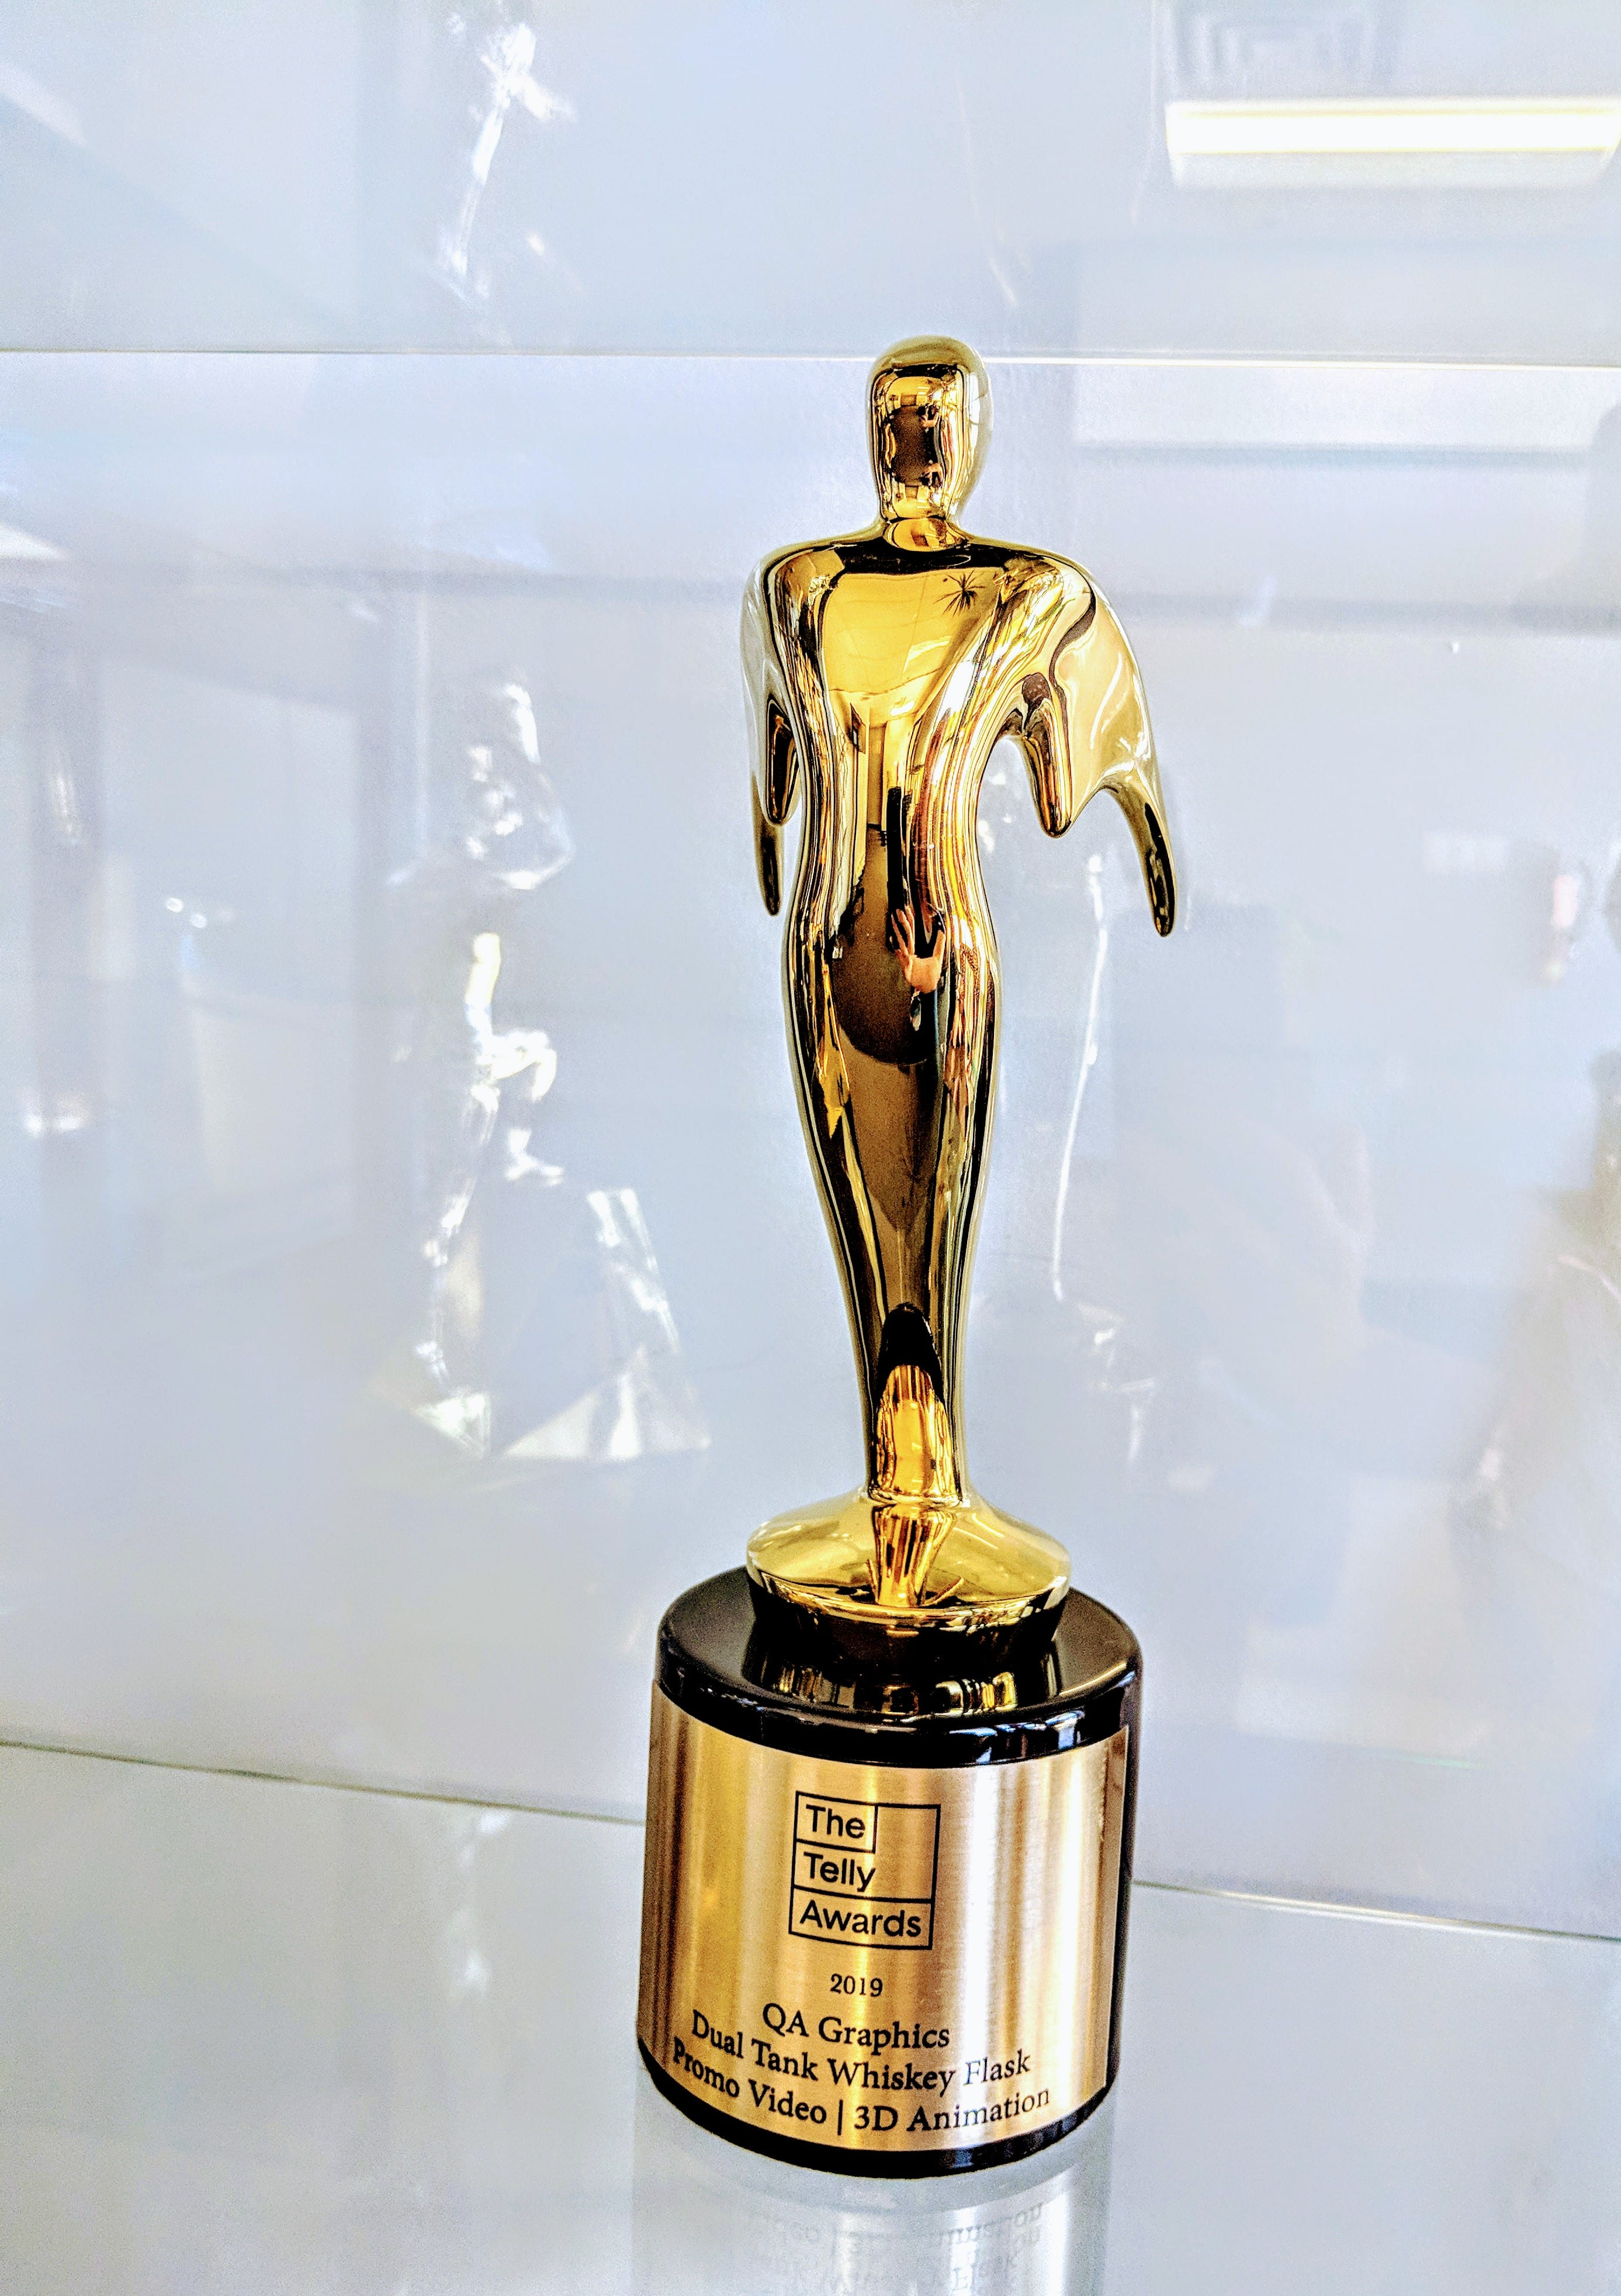 40th Annual Telly Award for 3D animation gold statue in display case